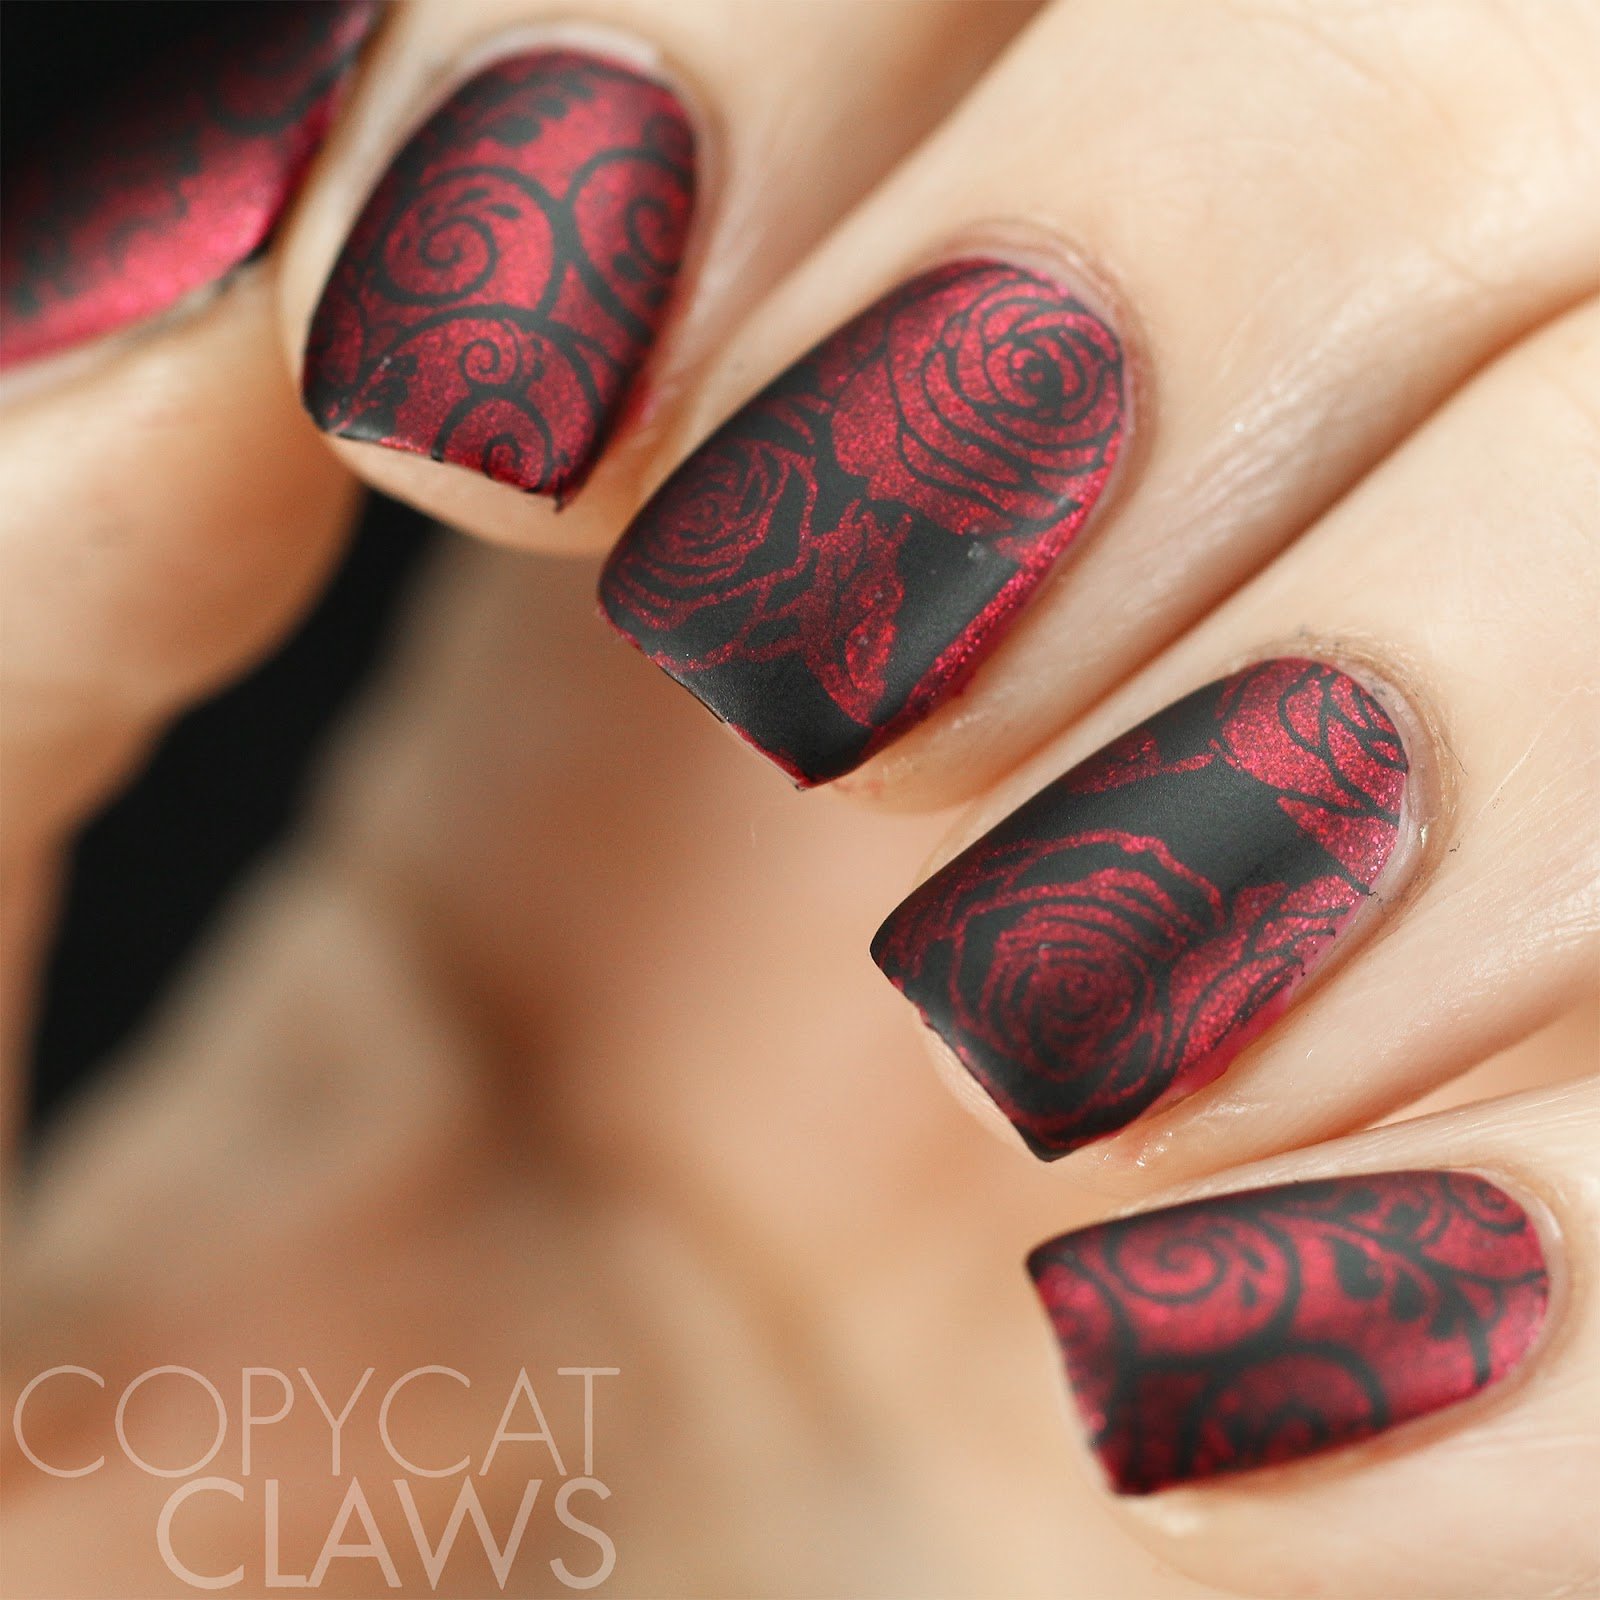 Red and black nail ideas!